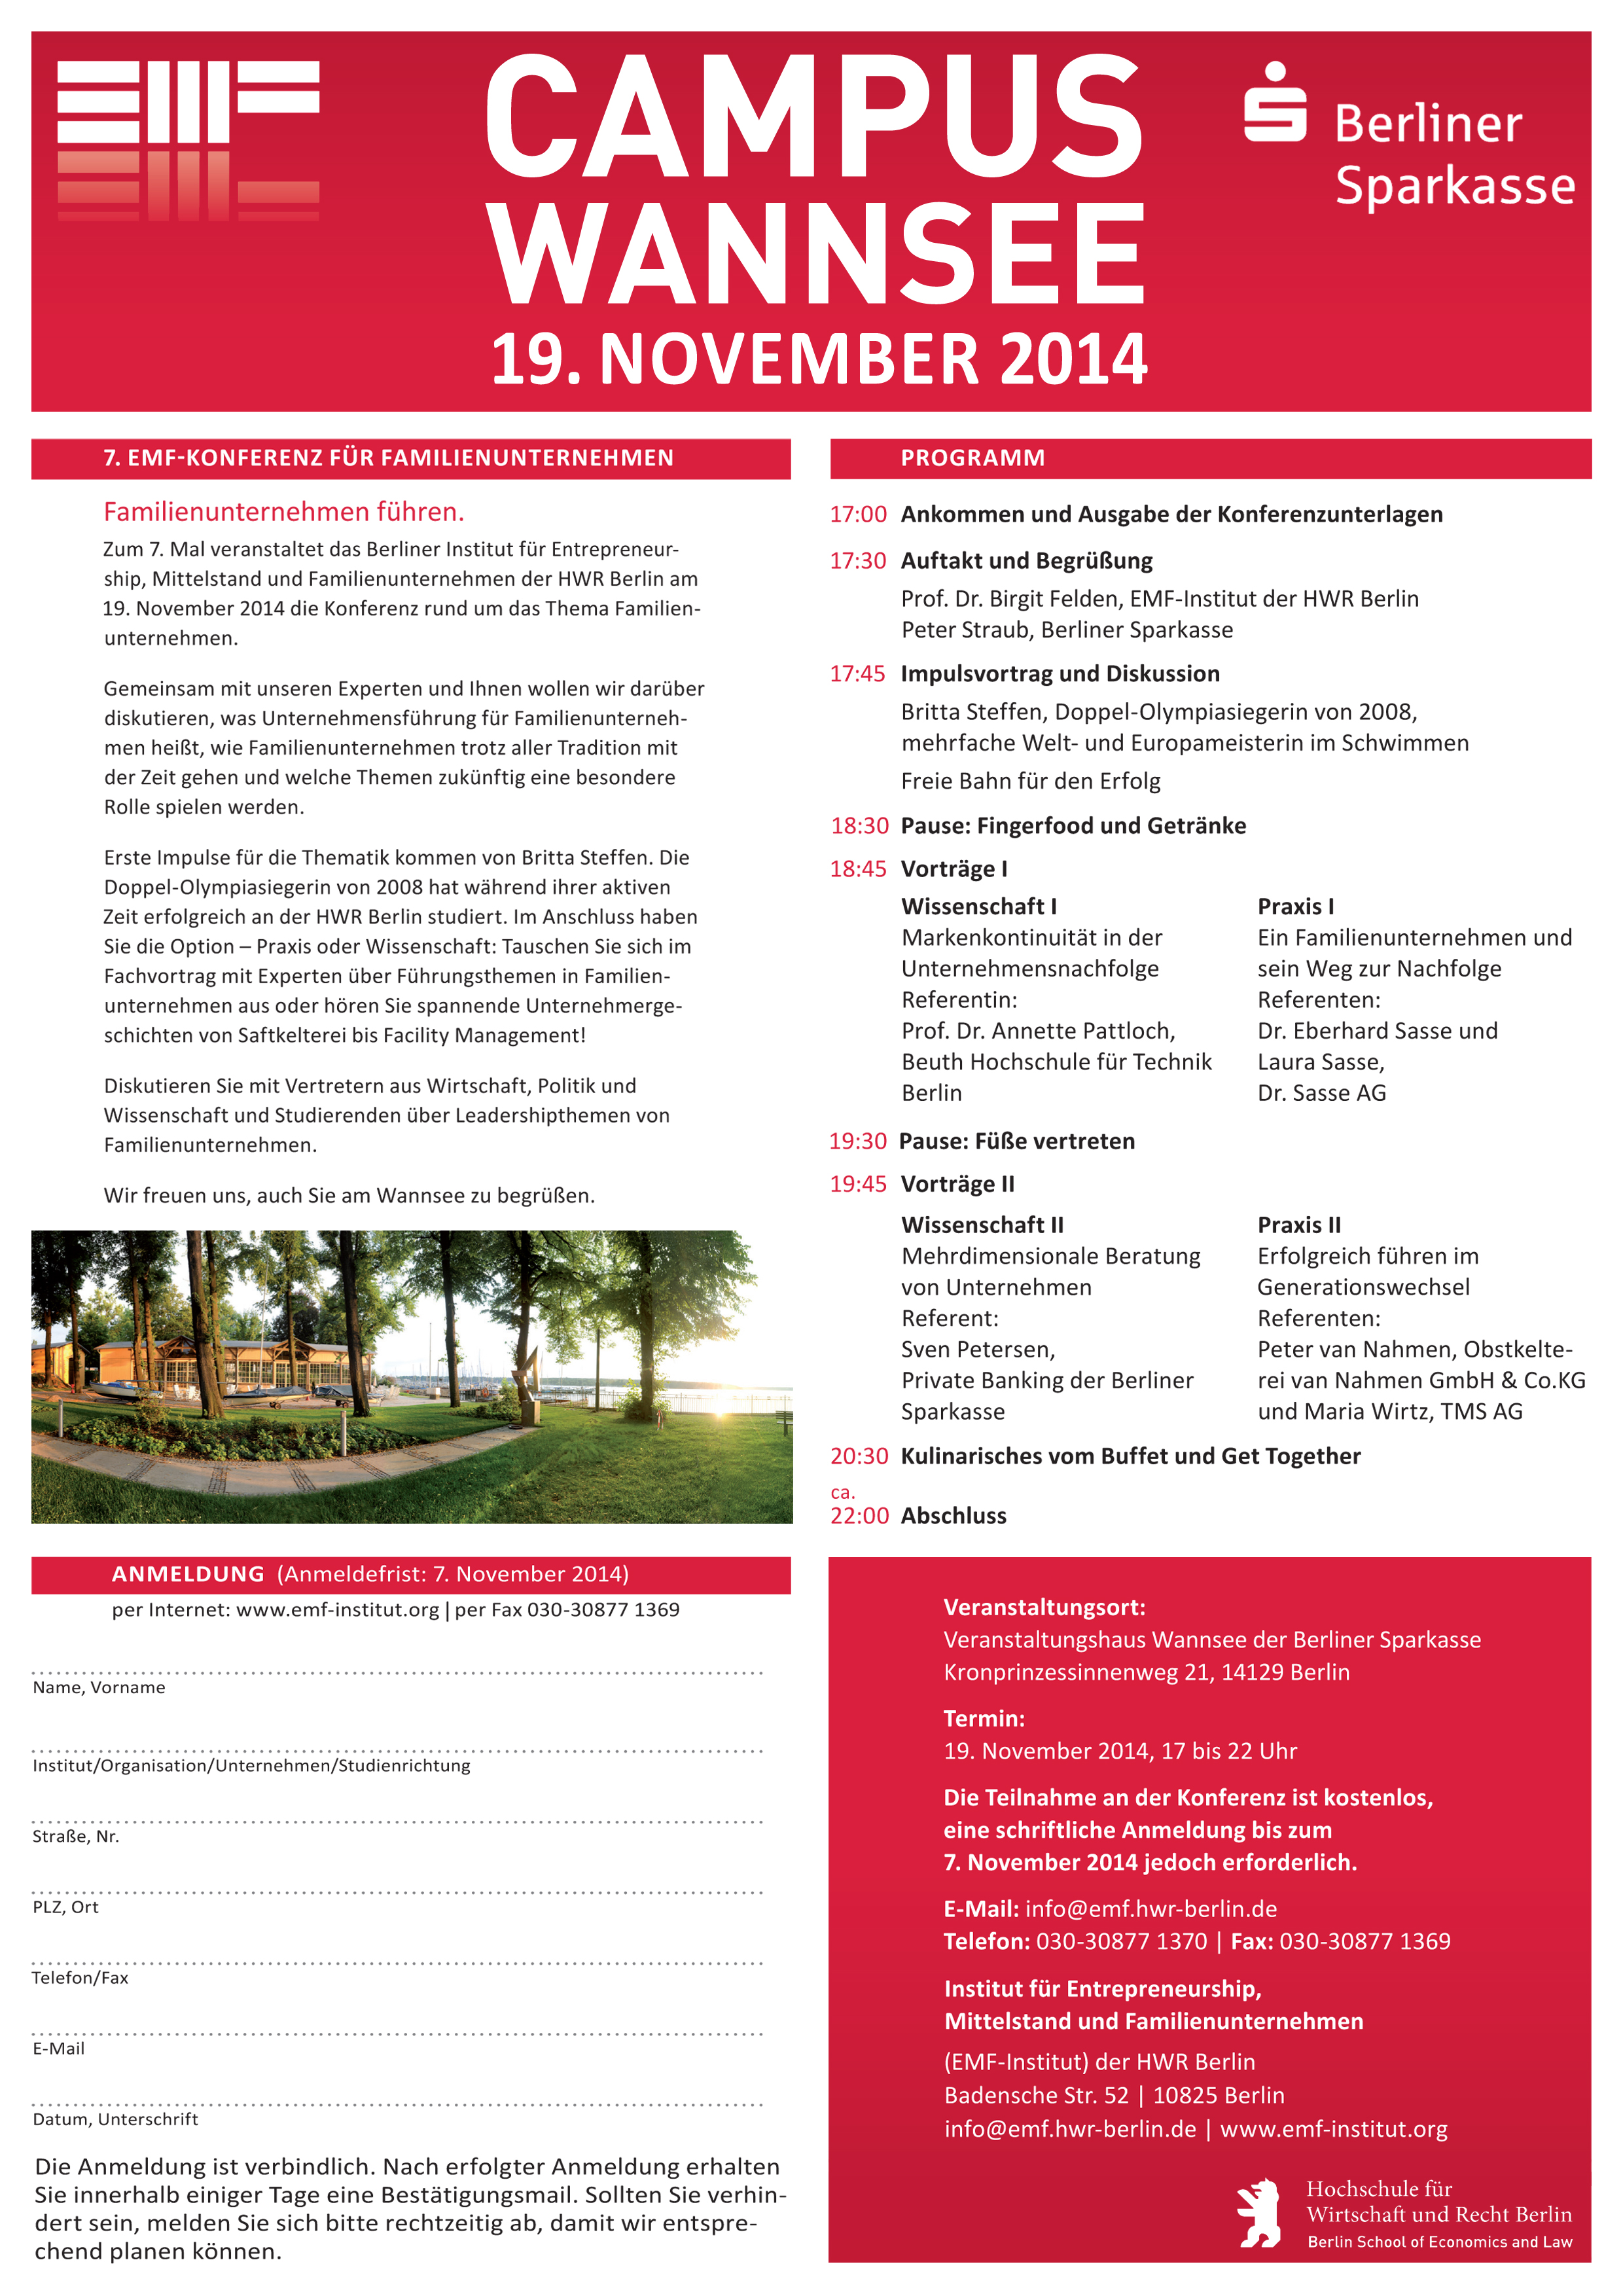 Flyer_Campus_Wannsee_14_A4